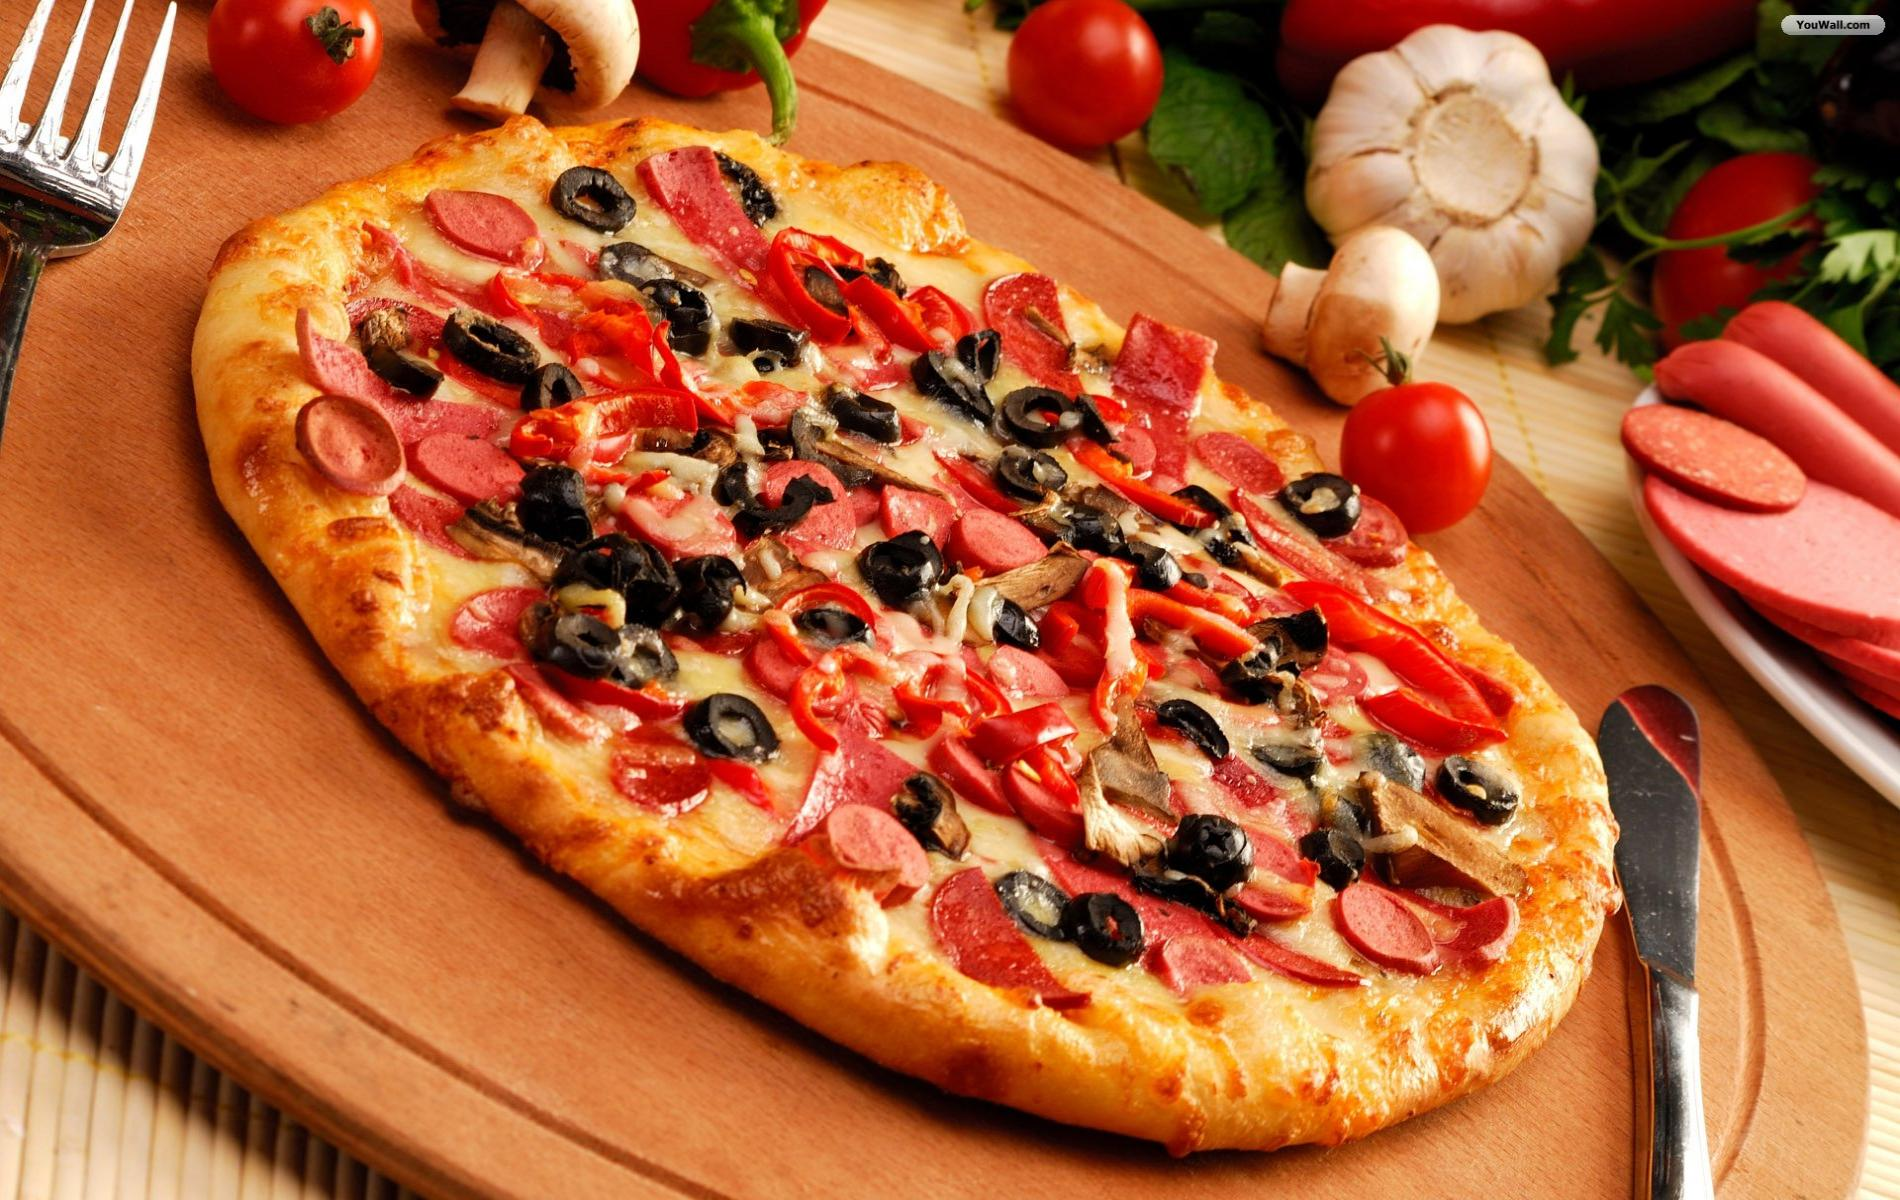 yummy_pizza_wallpaper_09983-1900×1200